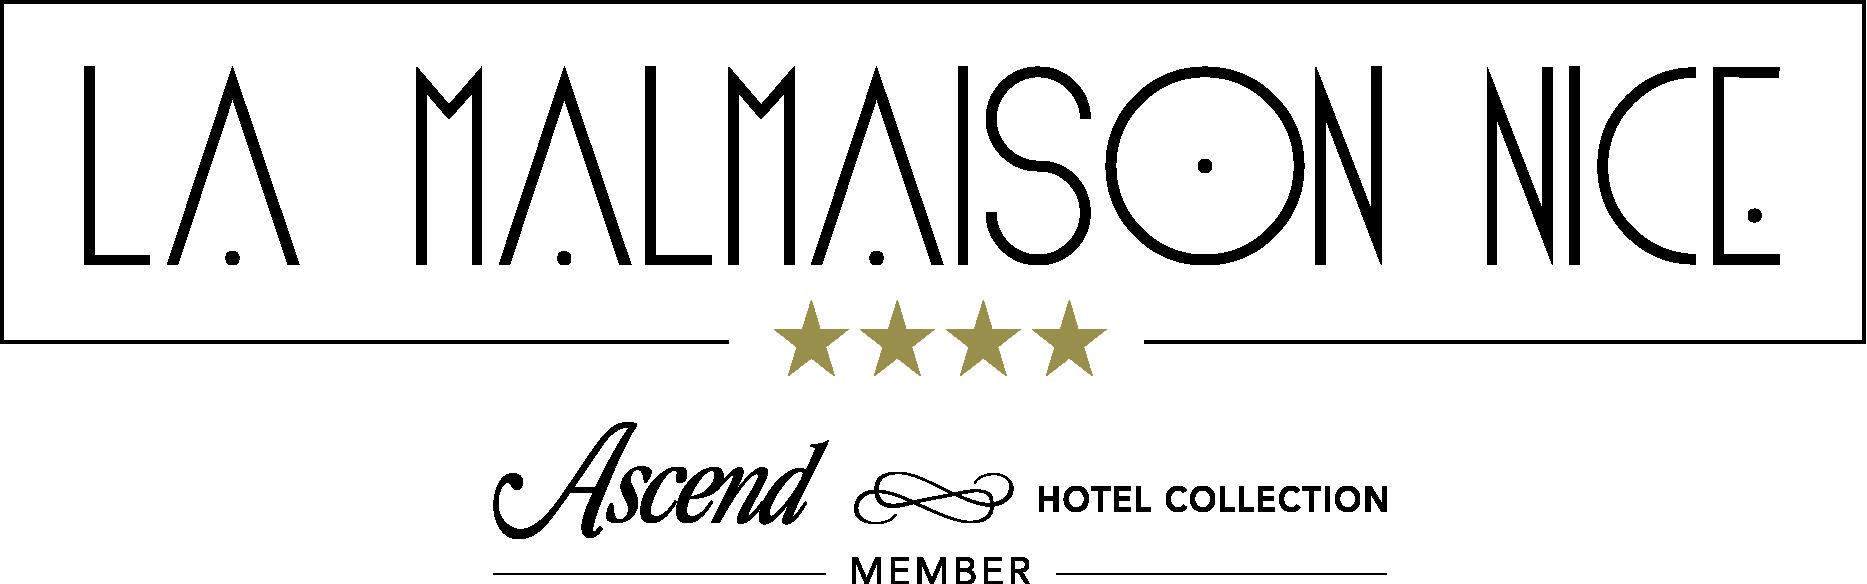 La Malmaison, An Ascend Hotel Collection Member